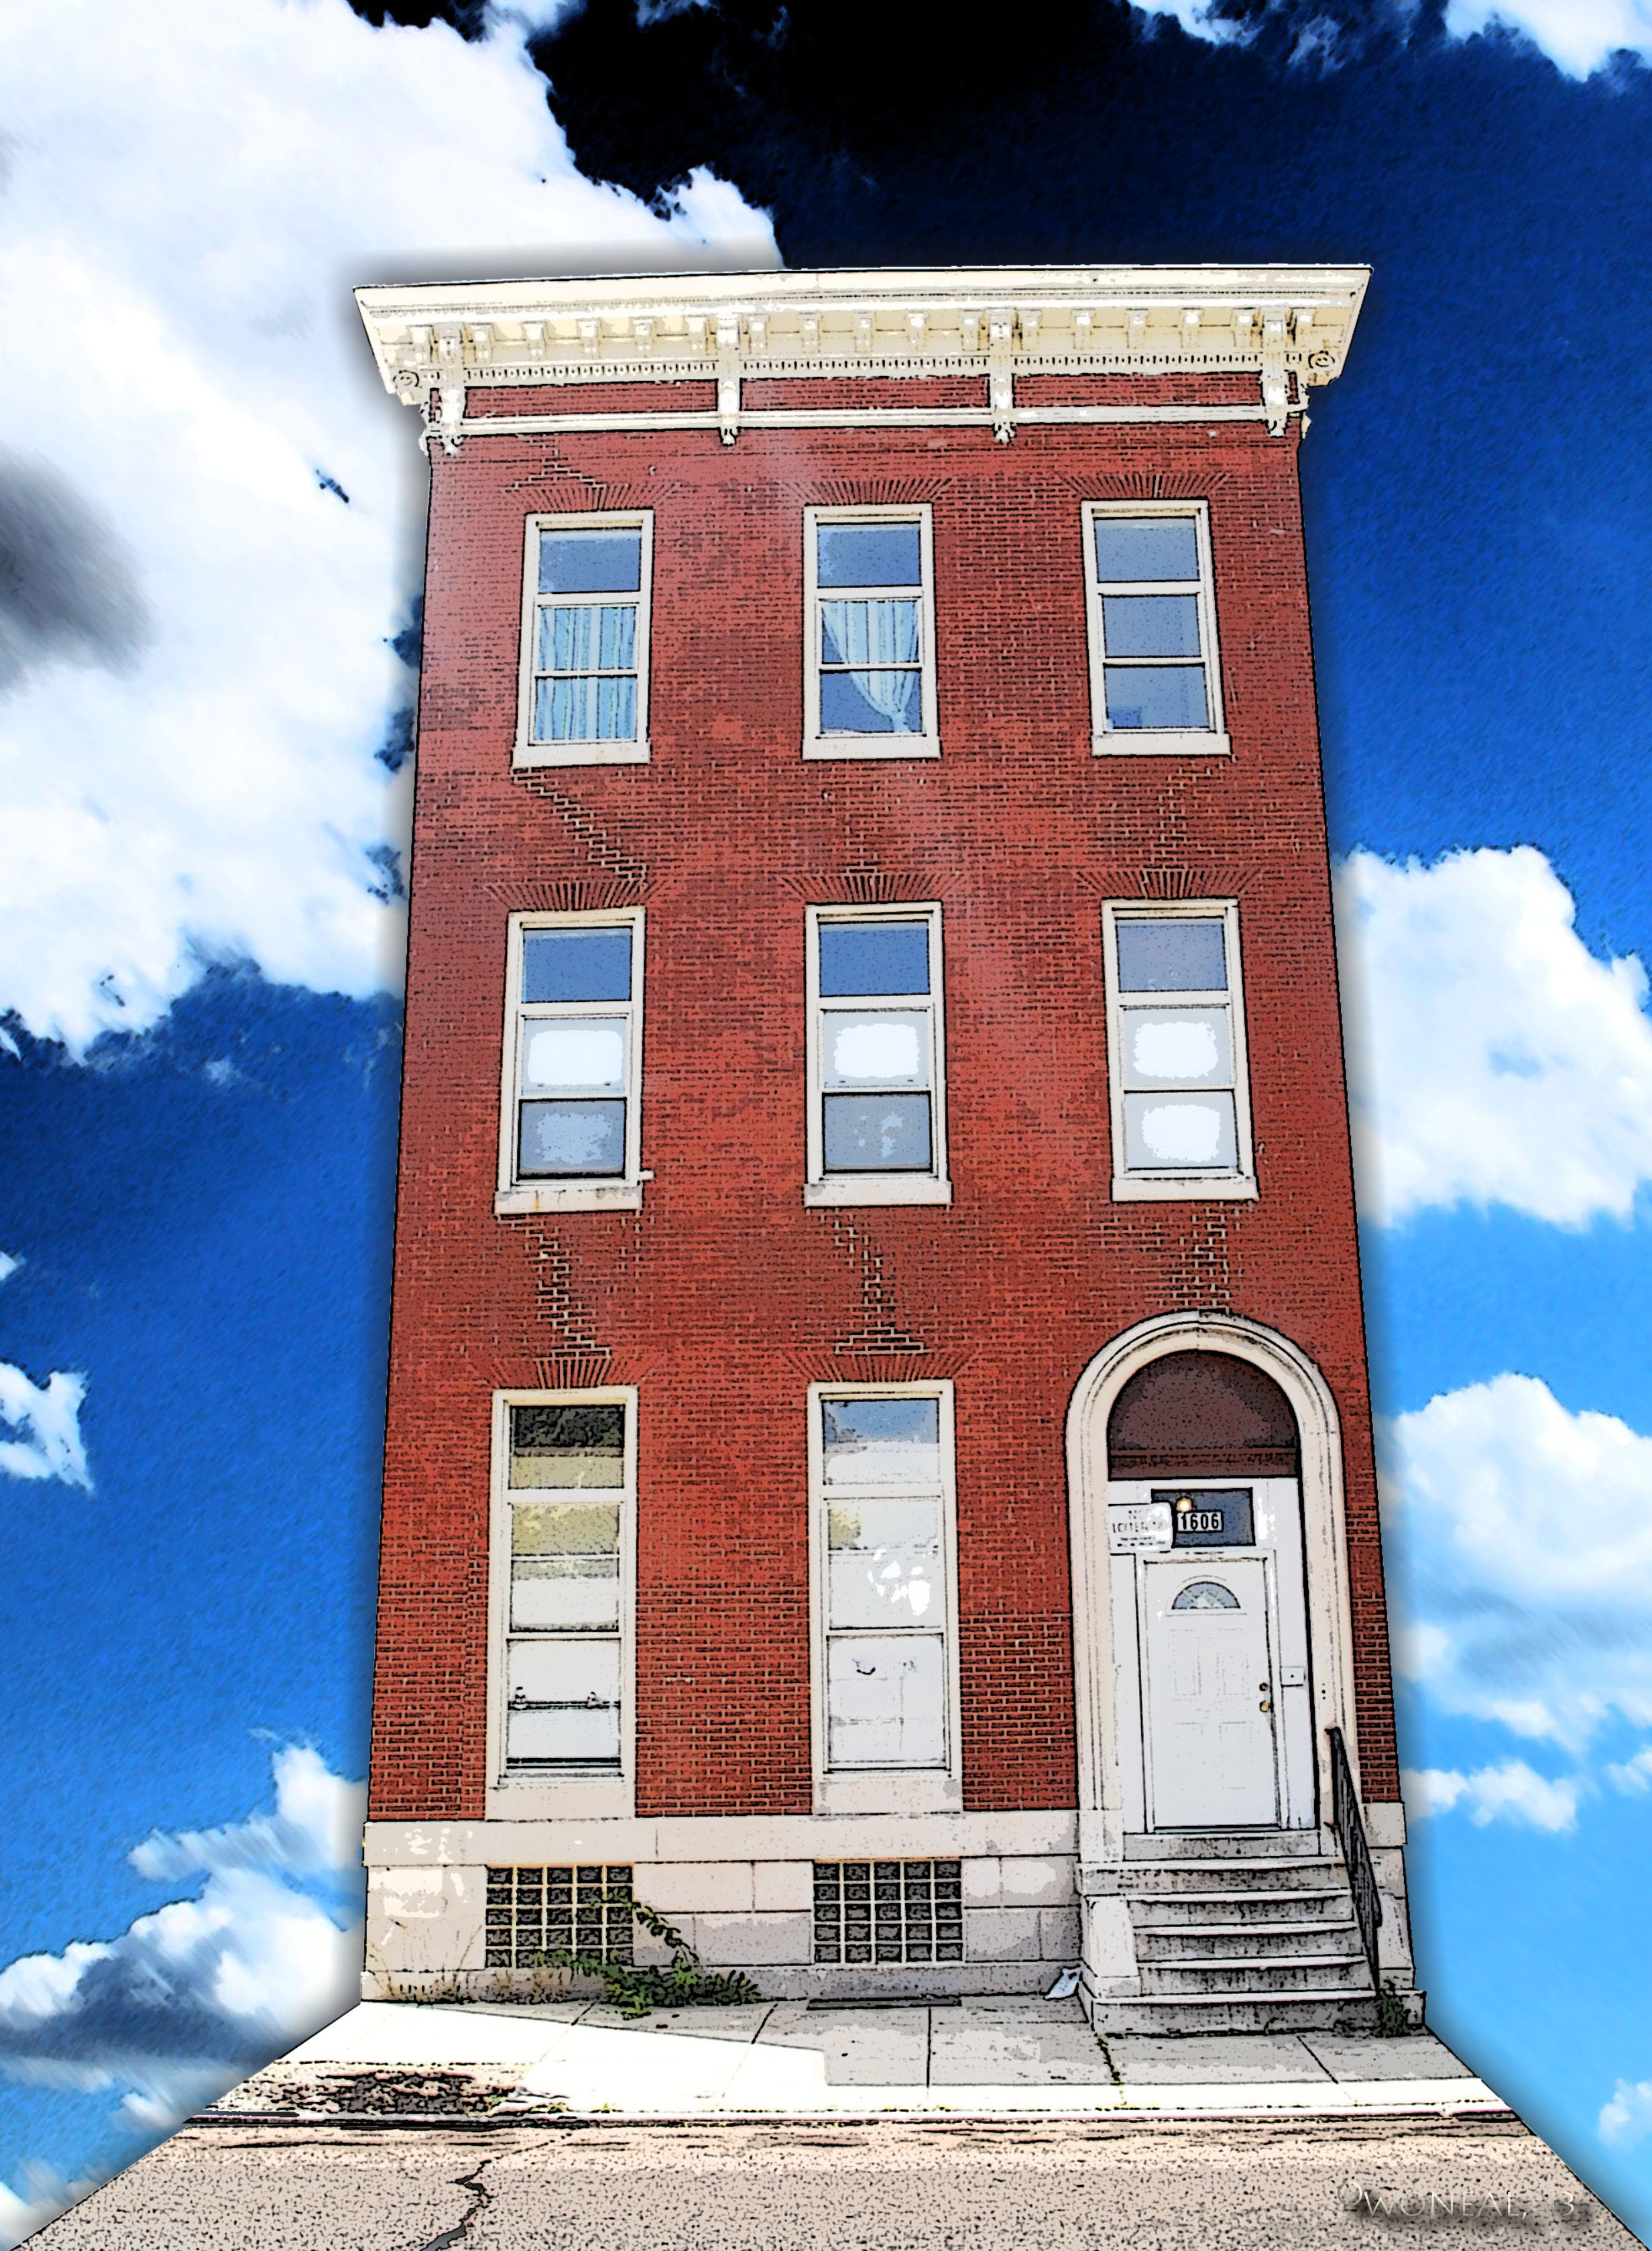 baltimore, houses, row houses, buildings, architecture